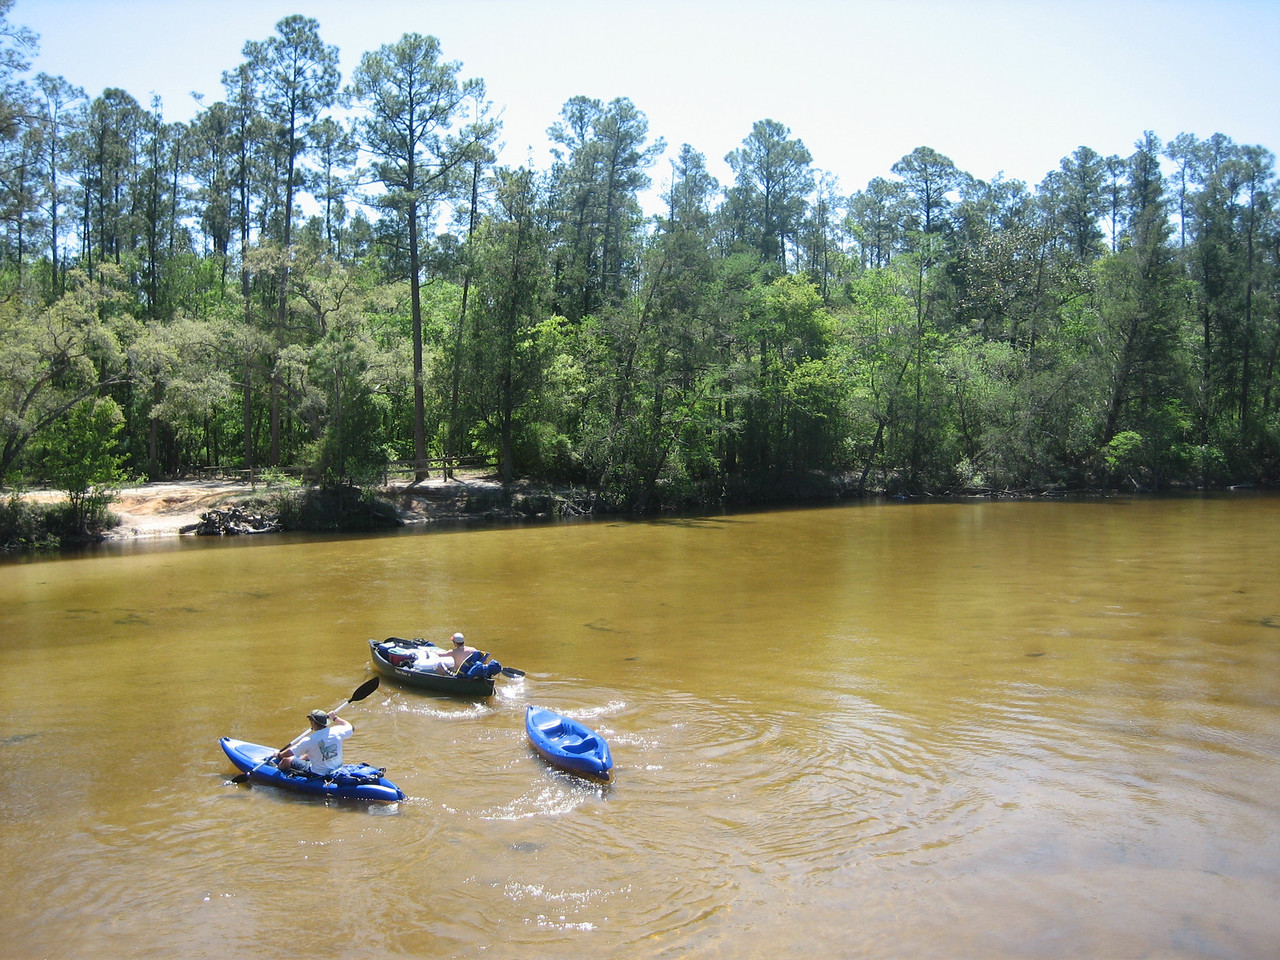 Kayakers on the Blackwater River<br /> PHOTO CREDIT: Sandra Friend / Florida Trail Association